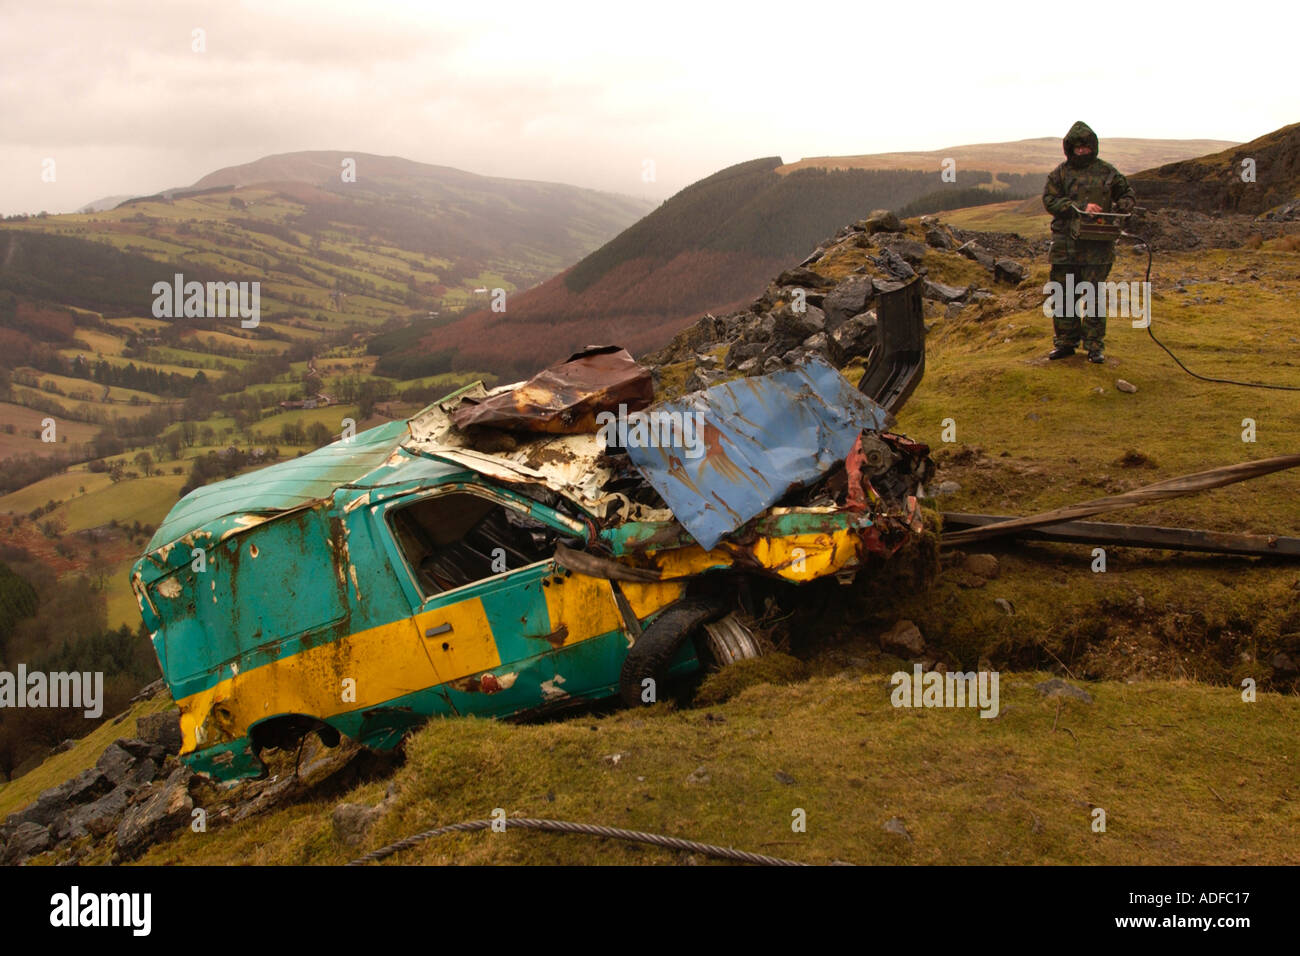 Environmental cleanup of vehicles dumped at Ystrad Quarry in the Brecon Beacons National Park near Trefil South Wales UK - Stock Image